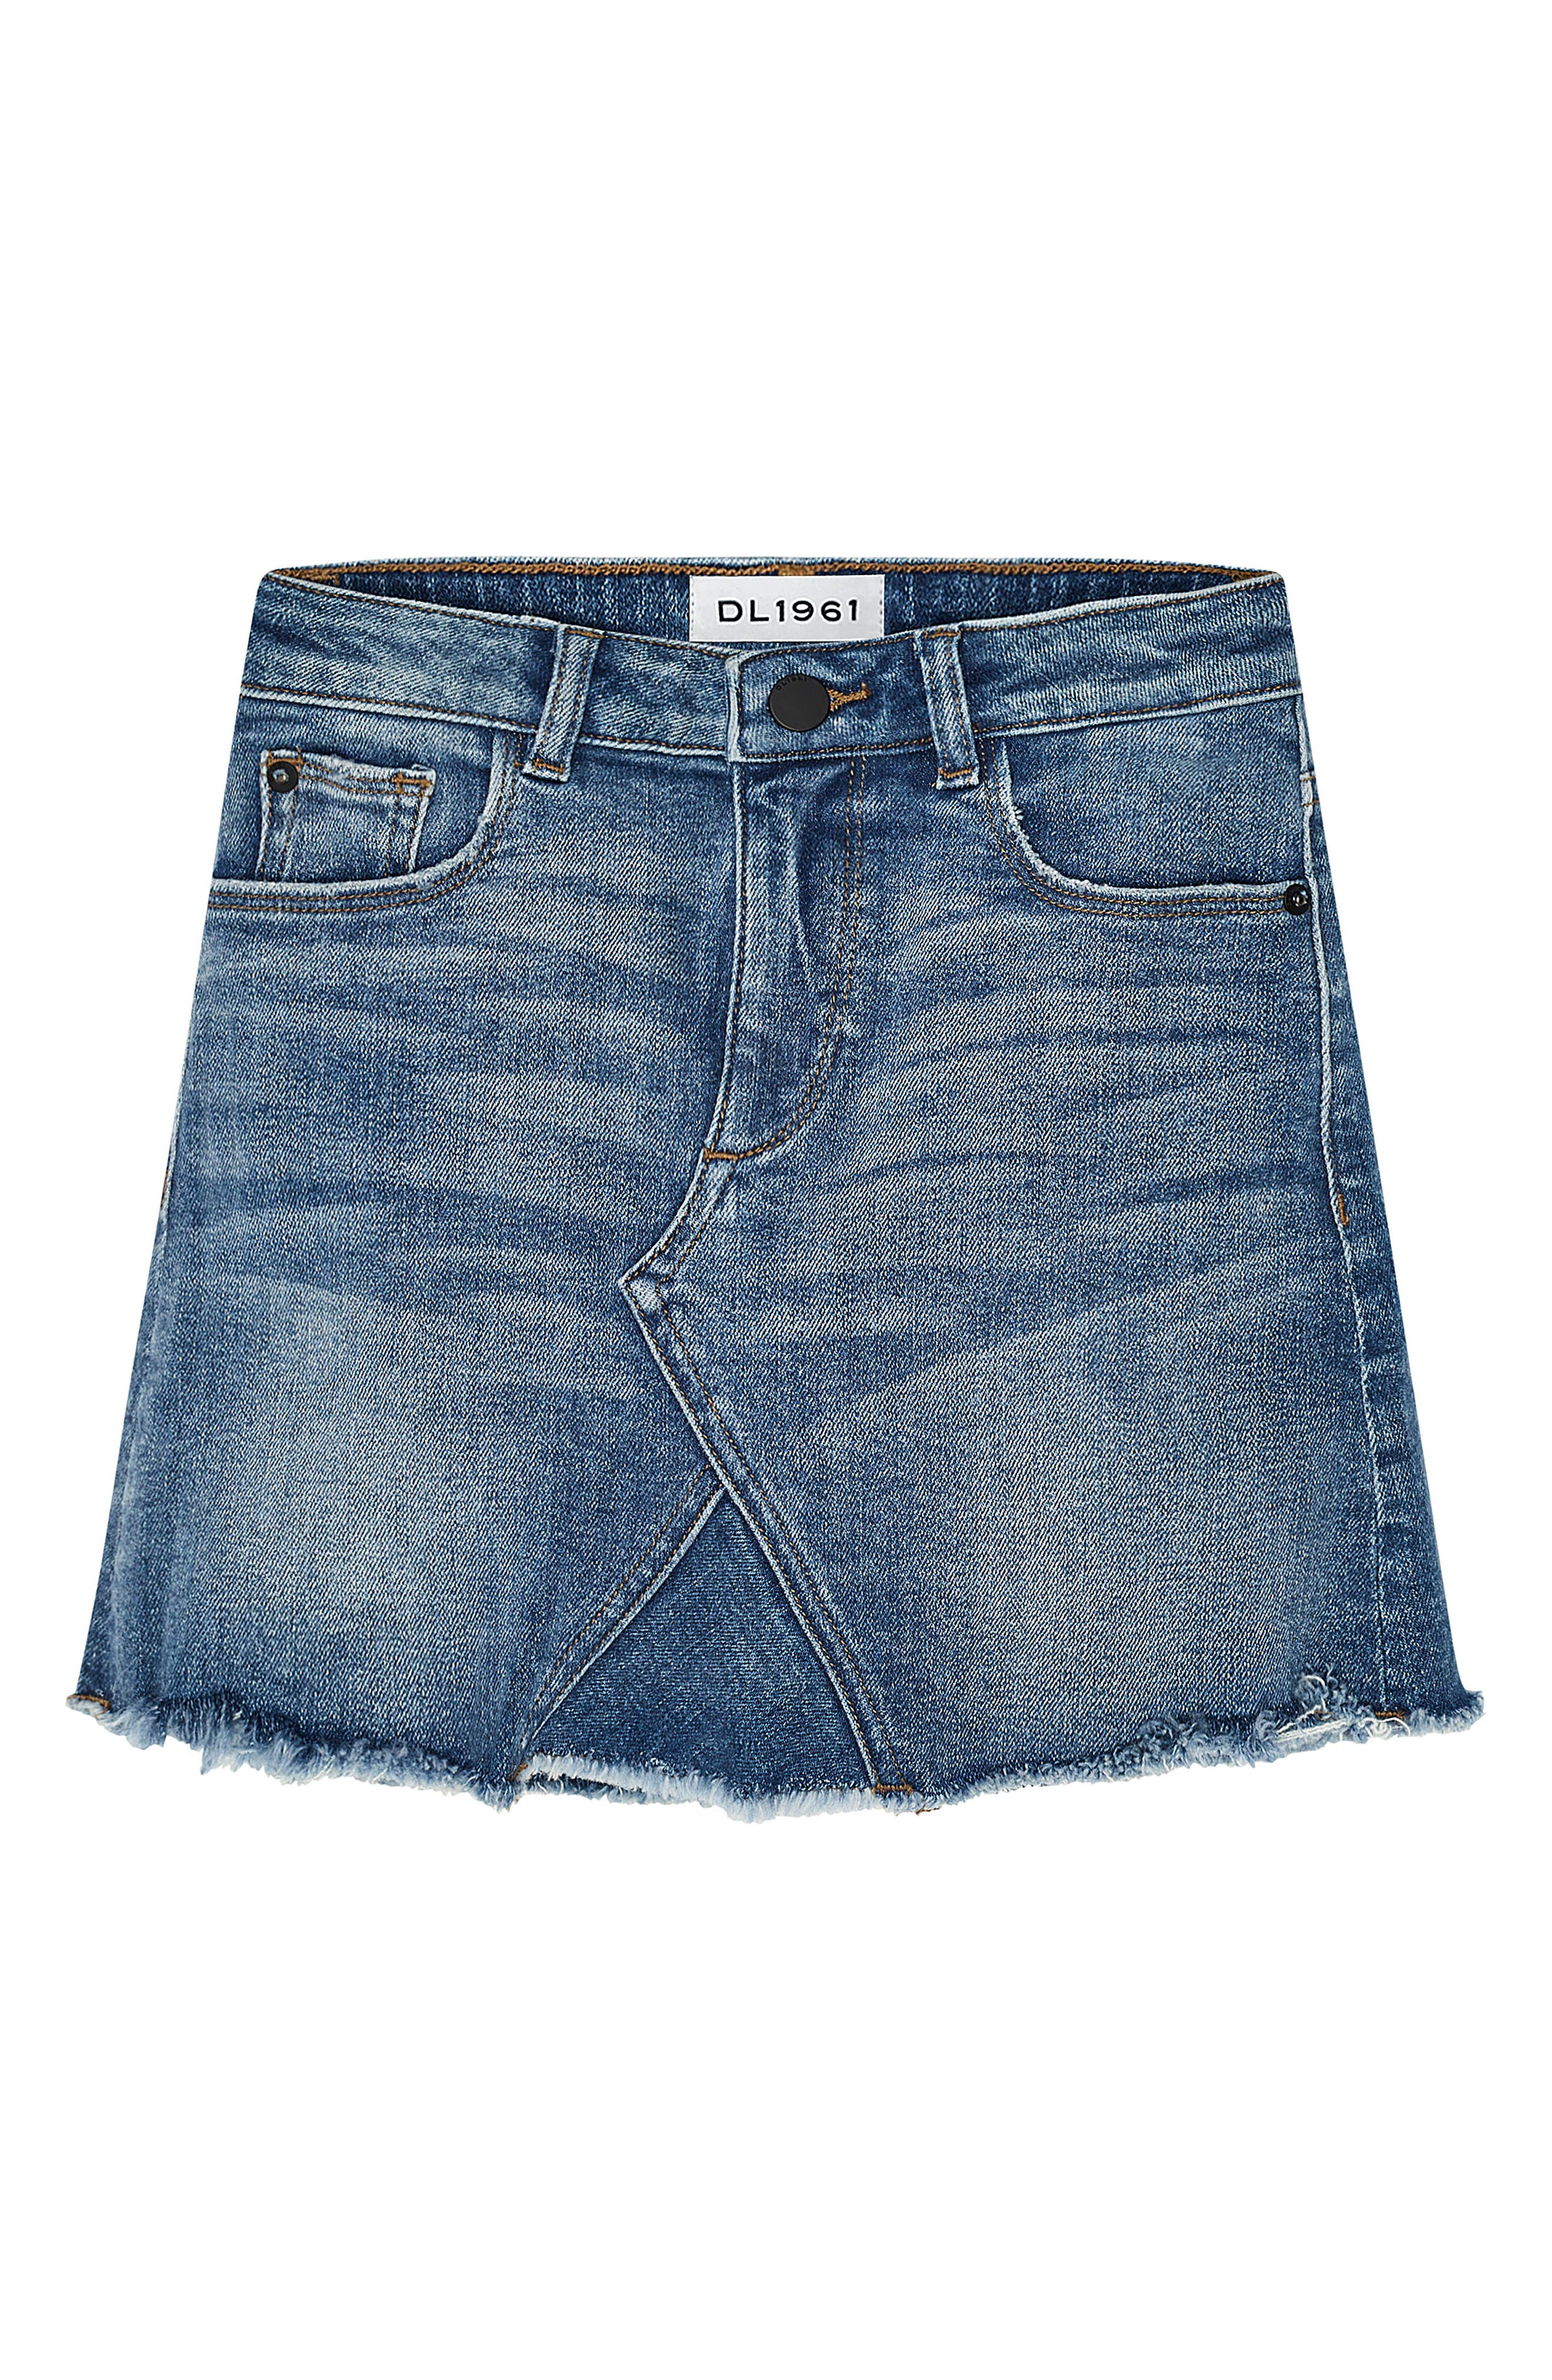 DL1961 Cutoff Denim Skirt (Big Girls)